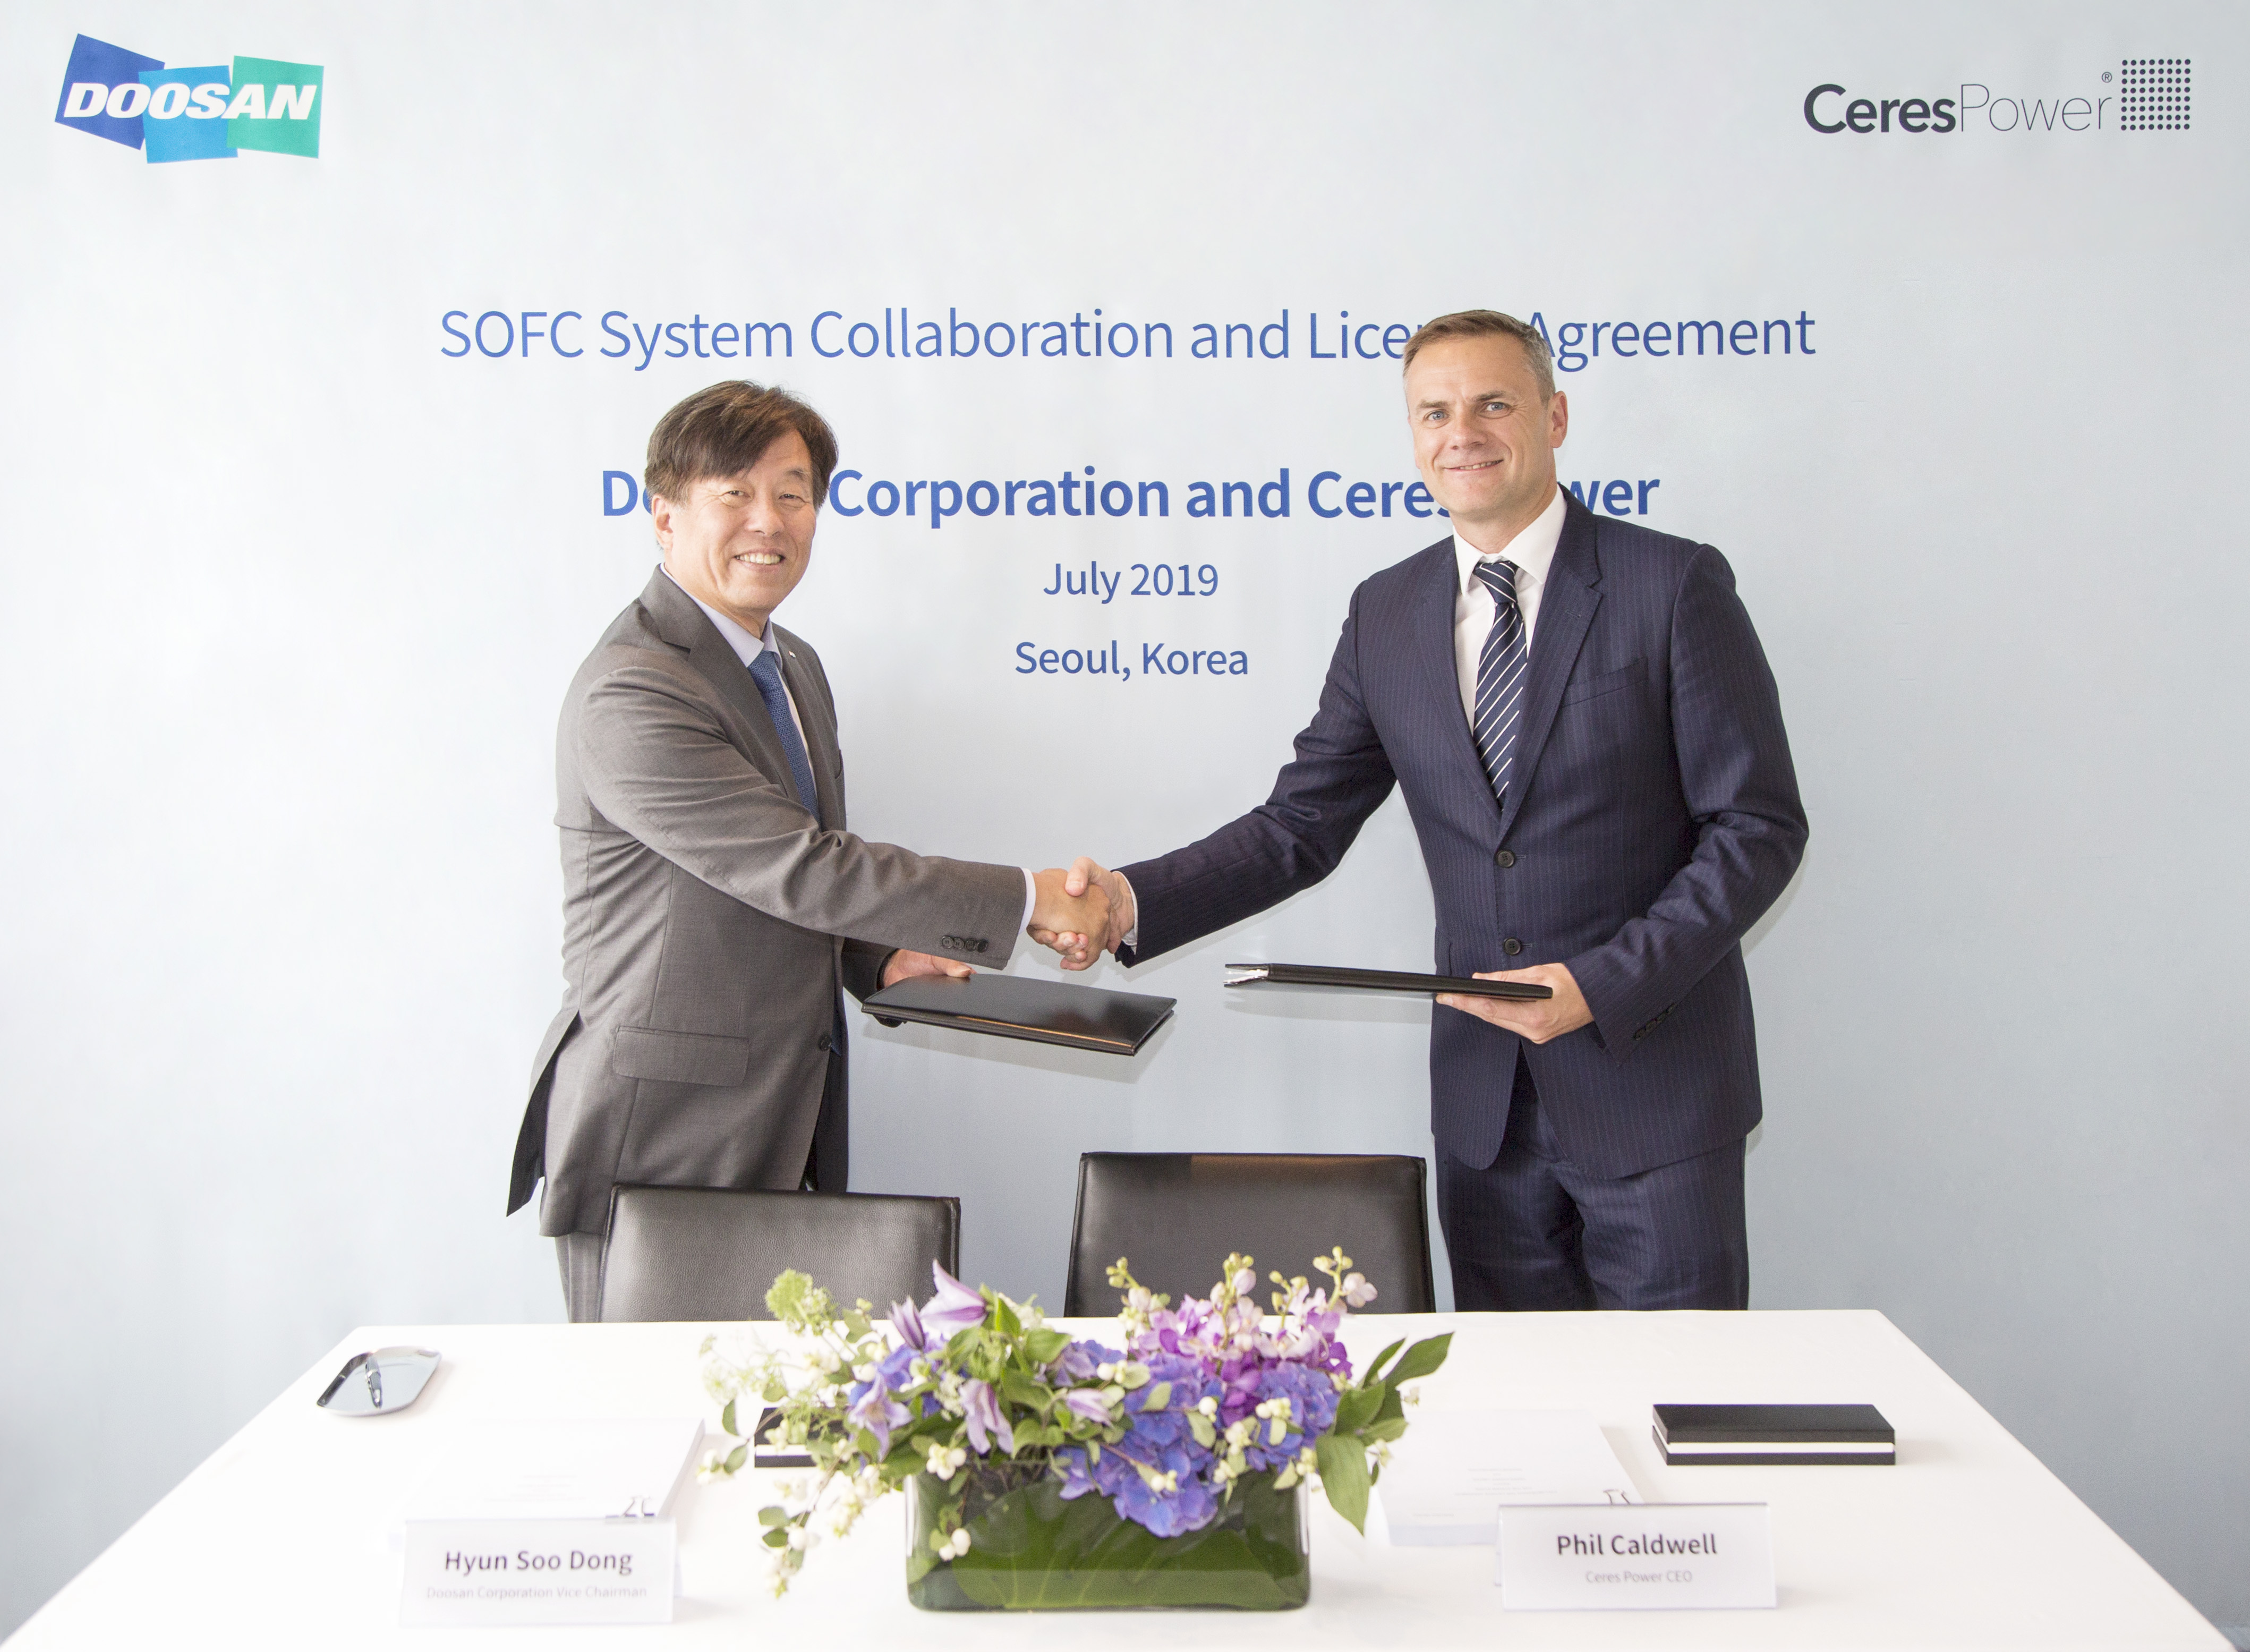 Ceres Power and Doosan Sign Collaboration and Licensing